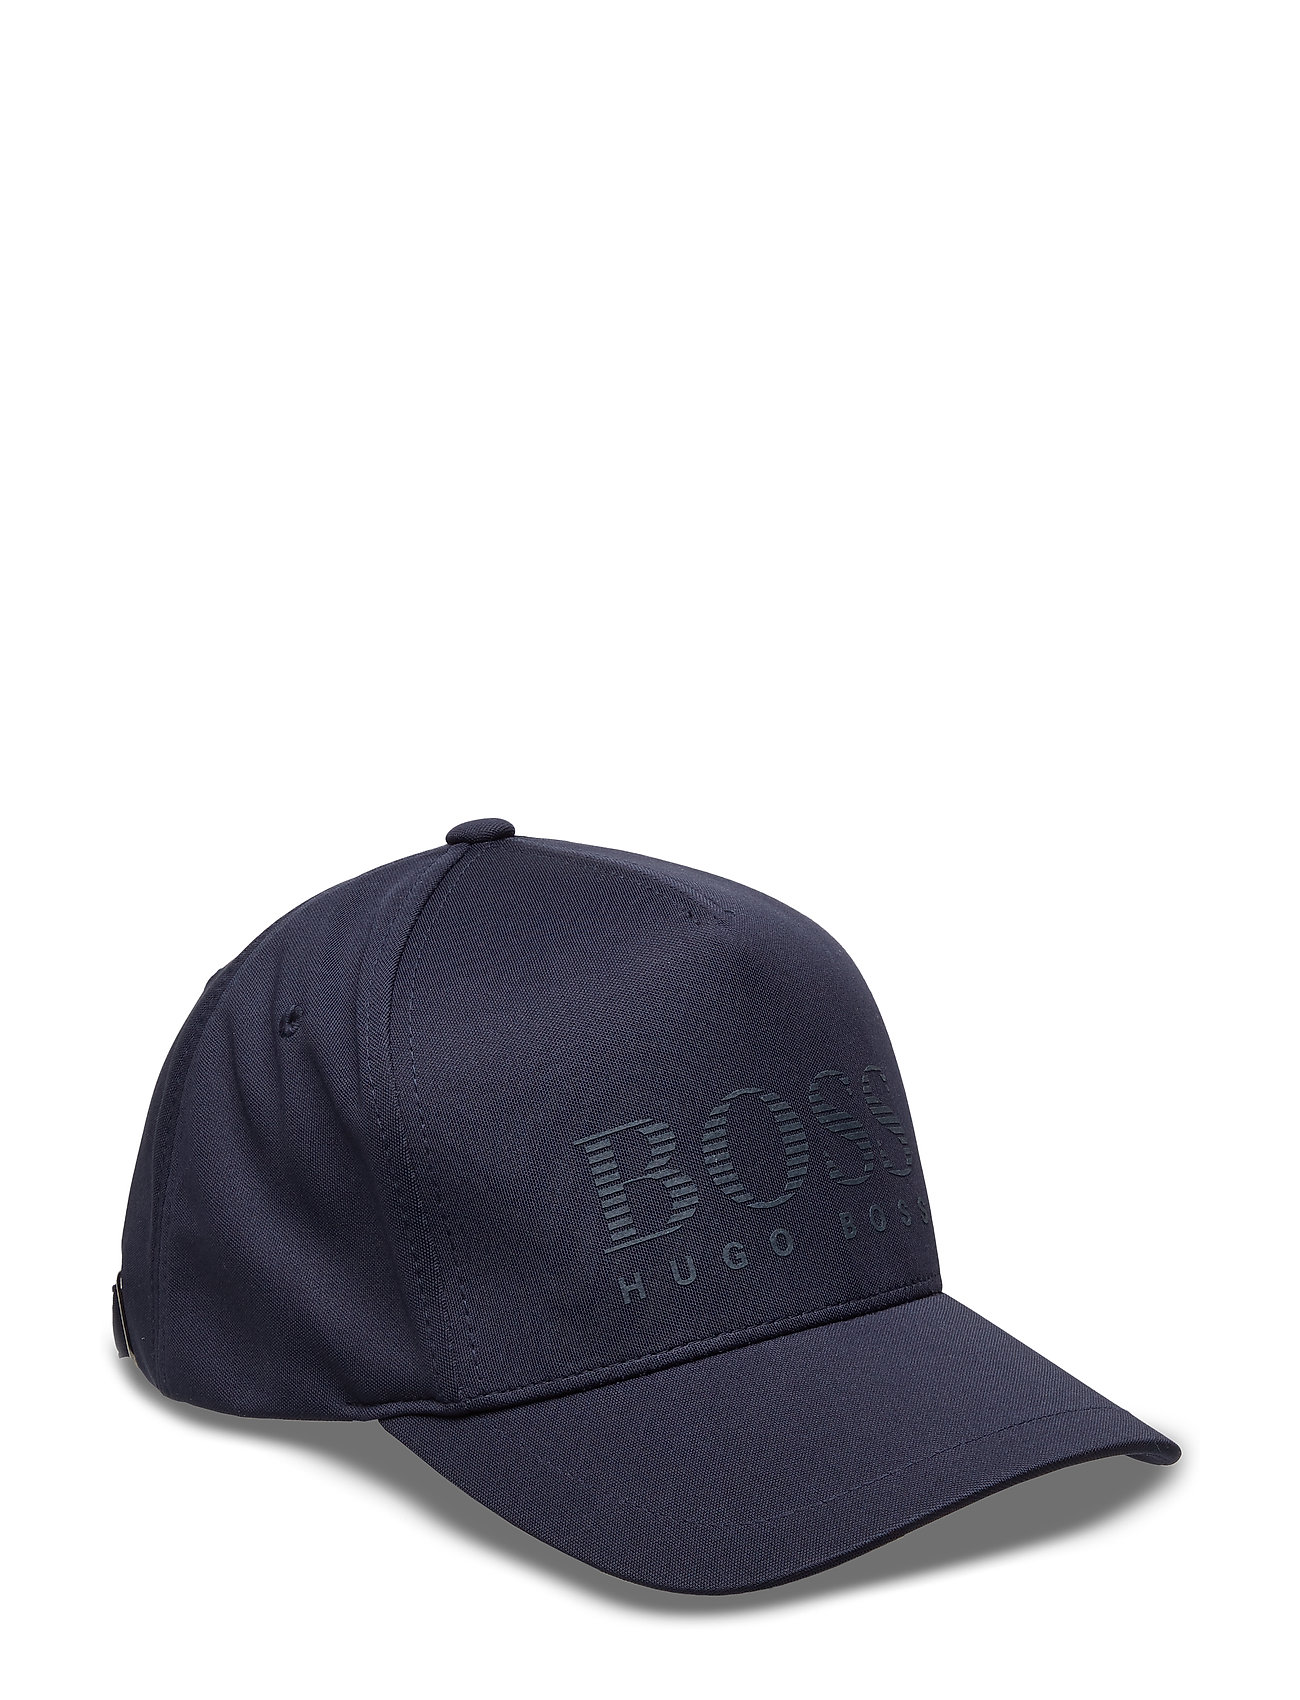 Boss-Cap-3 - Boss Athleisure Wear